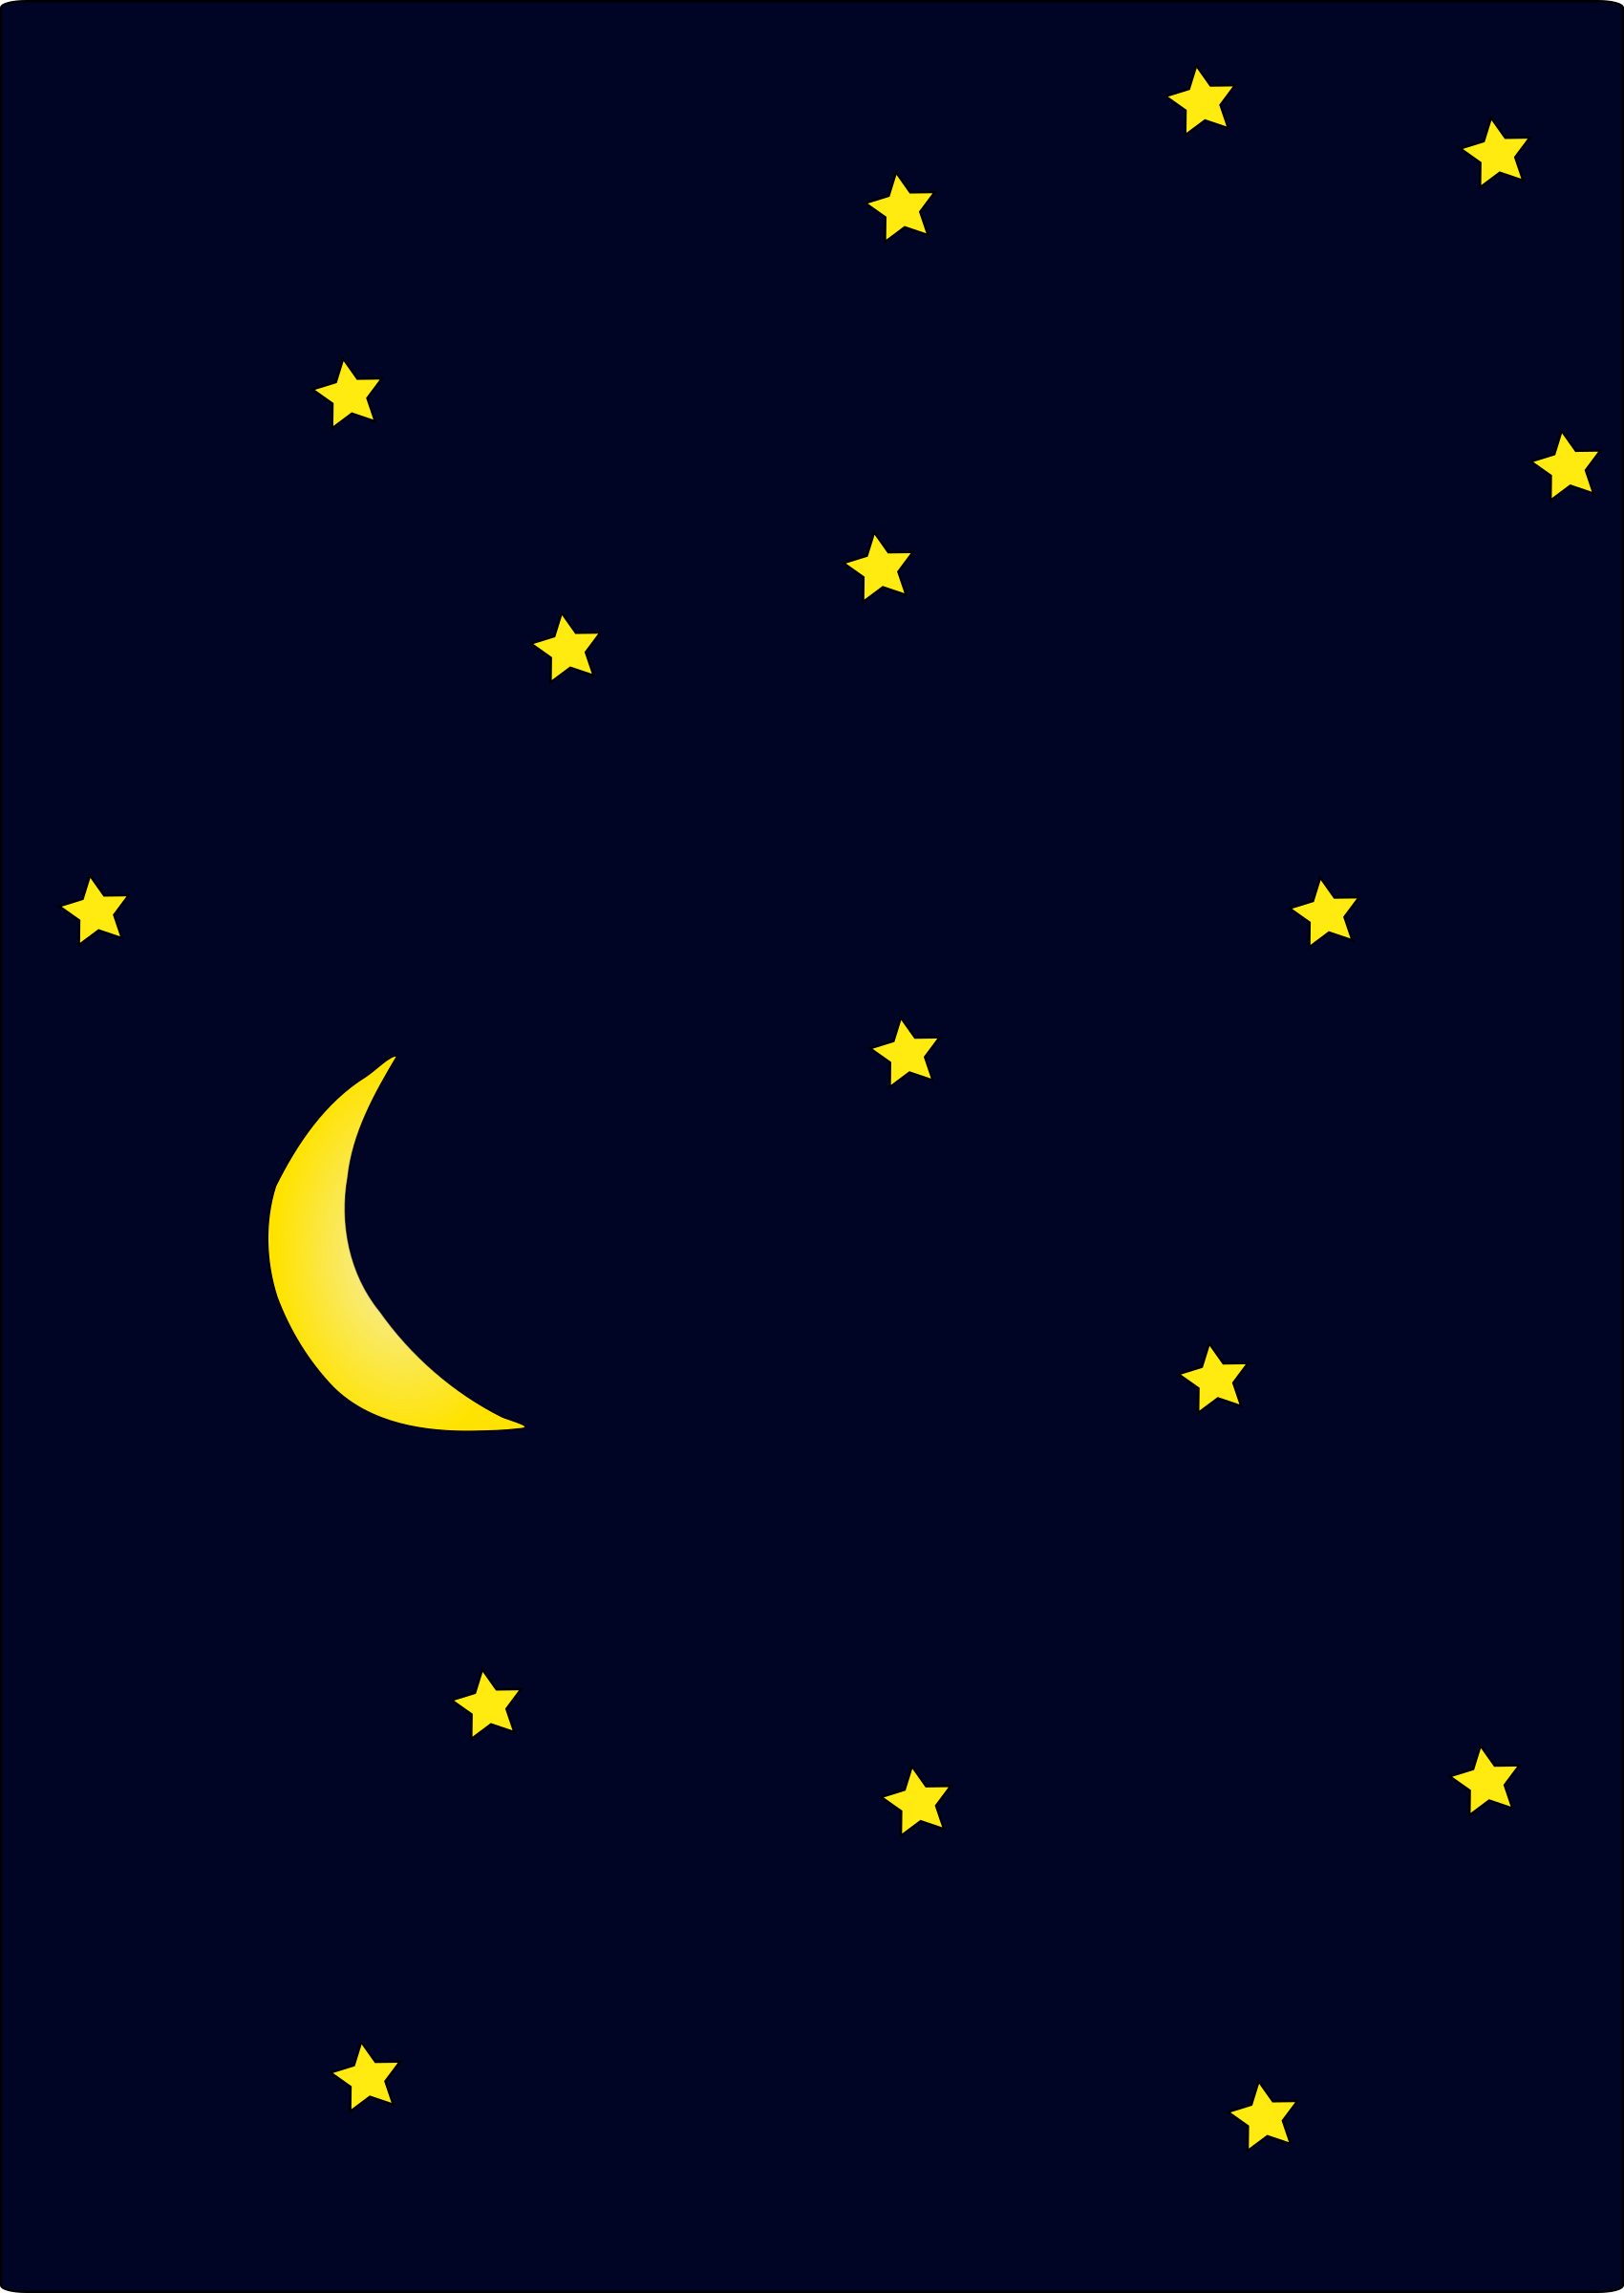 Night clipart moon star Clip Clipart Cliparts Night Library